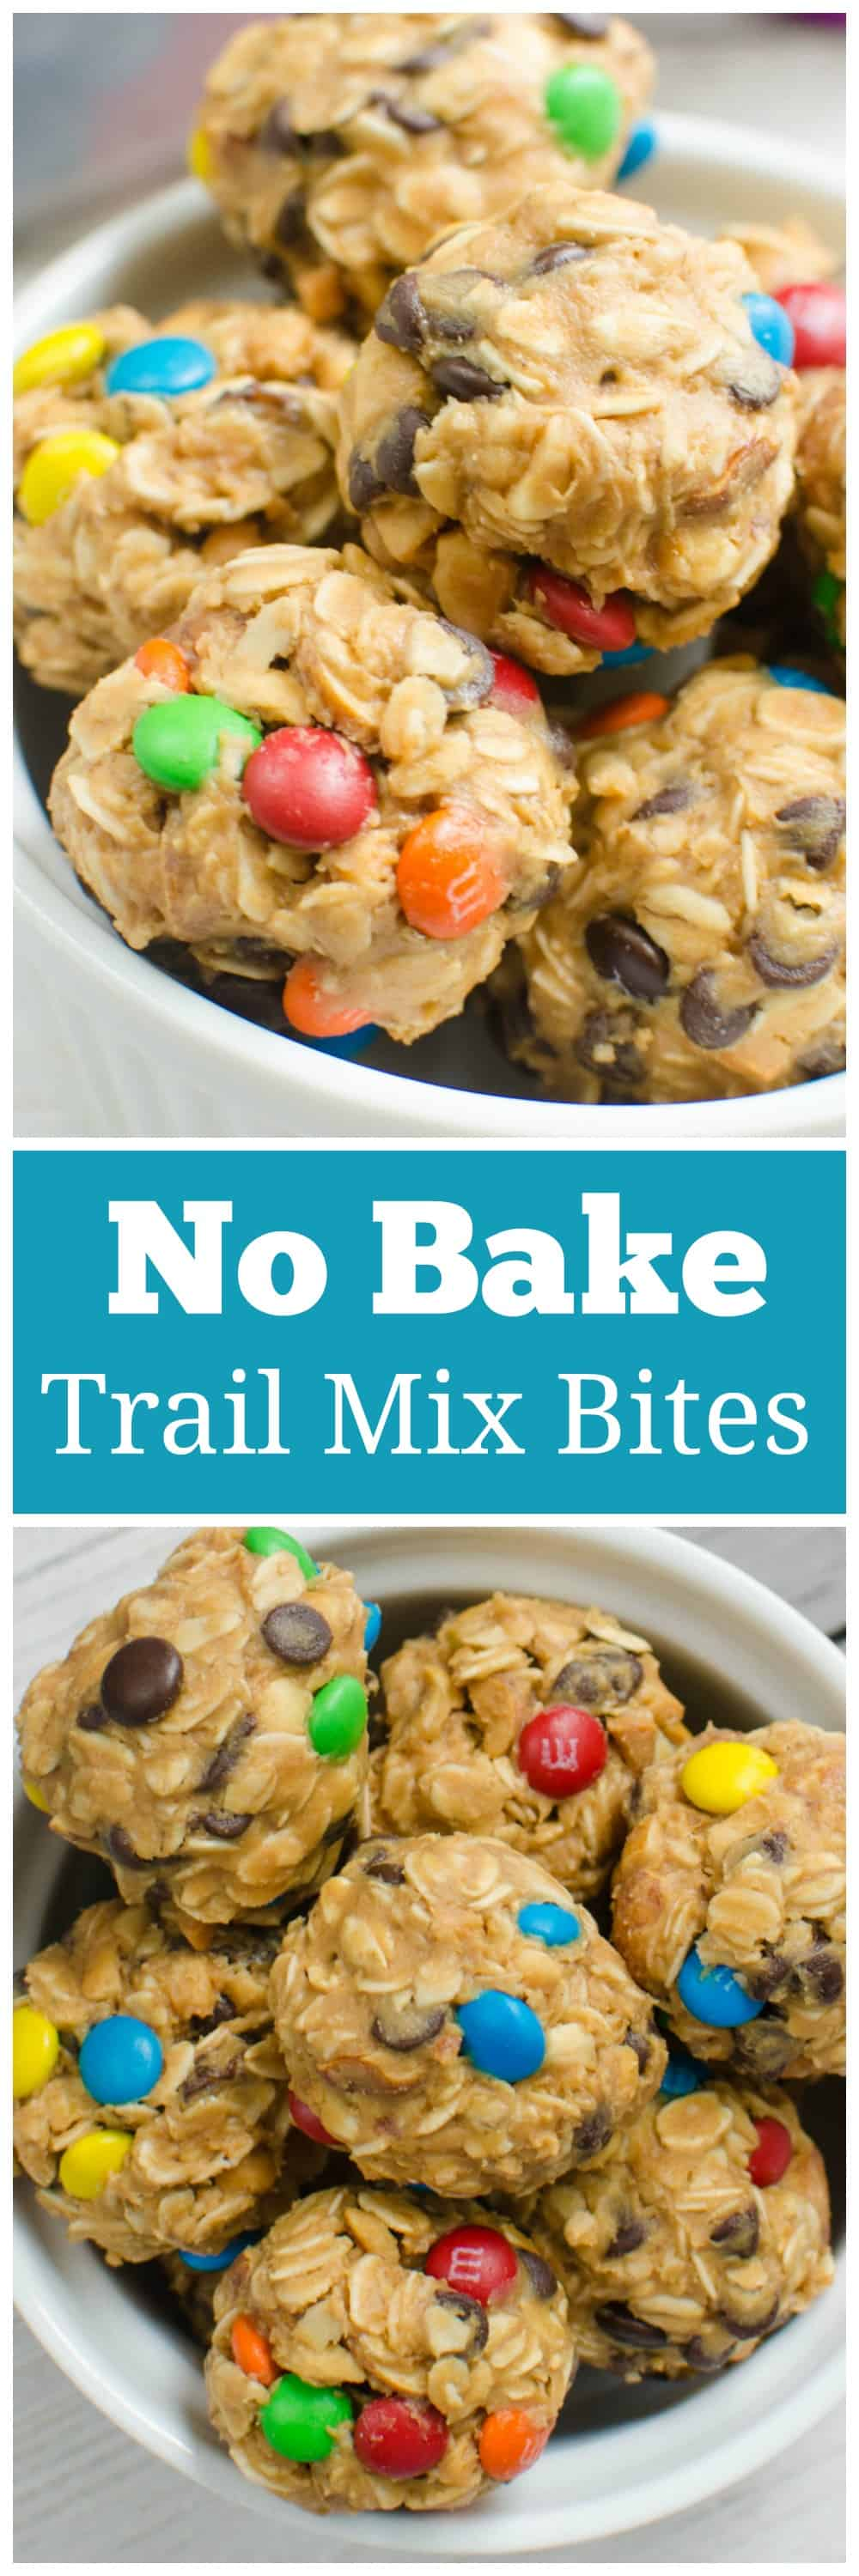 No-Bake Trail Mix Energy Bites - filled with raisins, peanuts, chocolate chips, and M&MS! The perfect quick snack for hiking, beach trips, or school lunches!